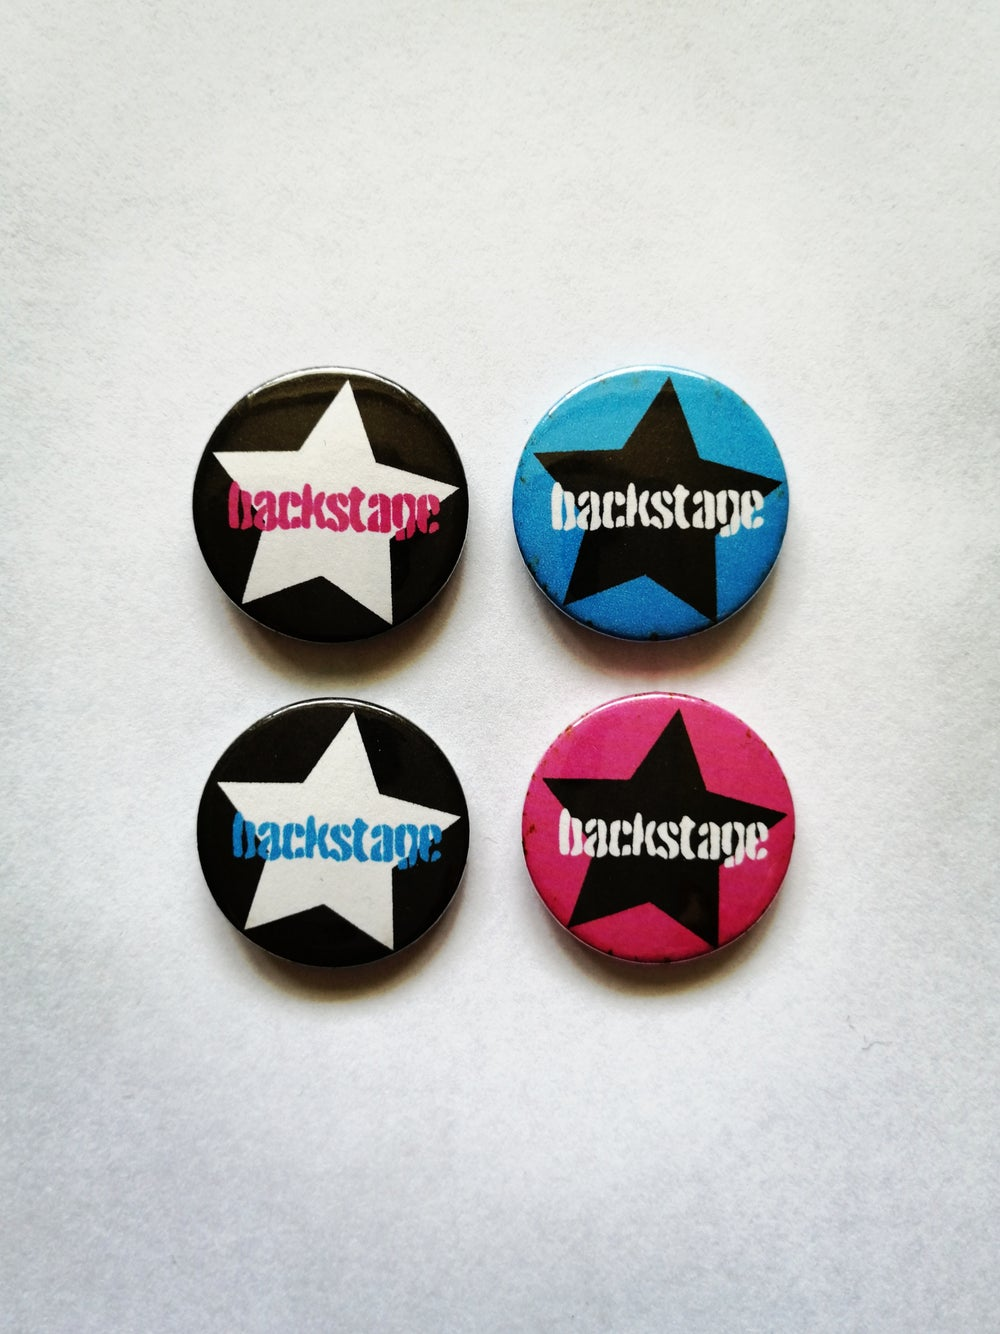 BACKSTAGE Pins (2 for 1)